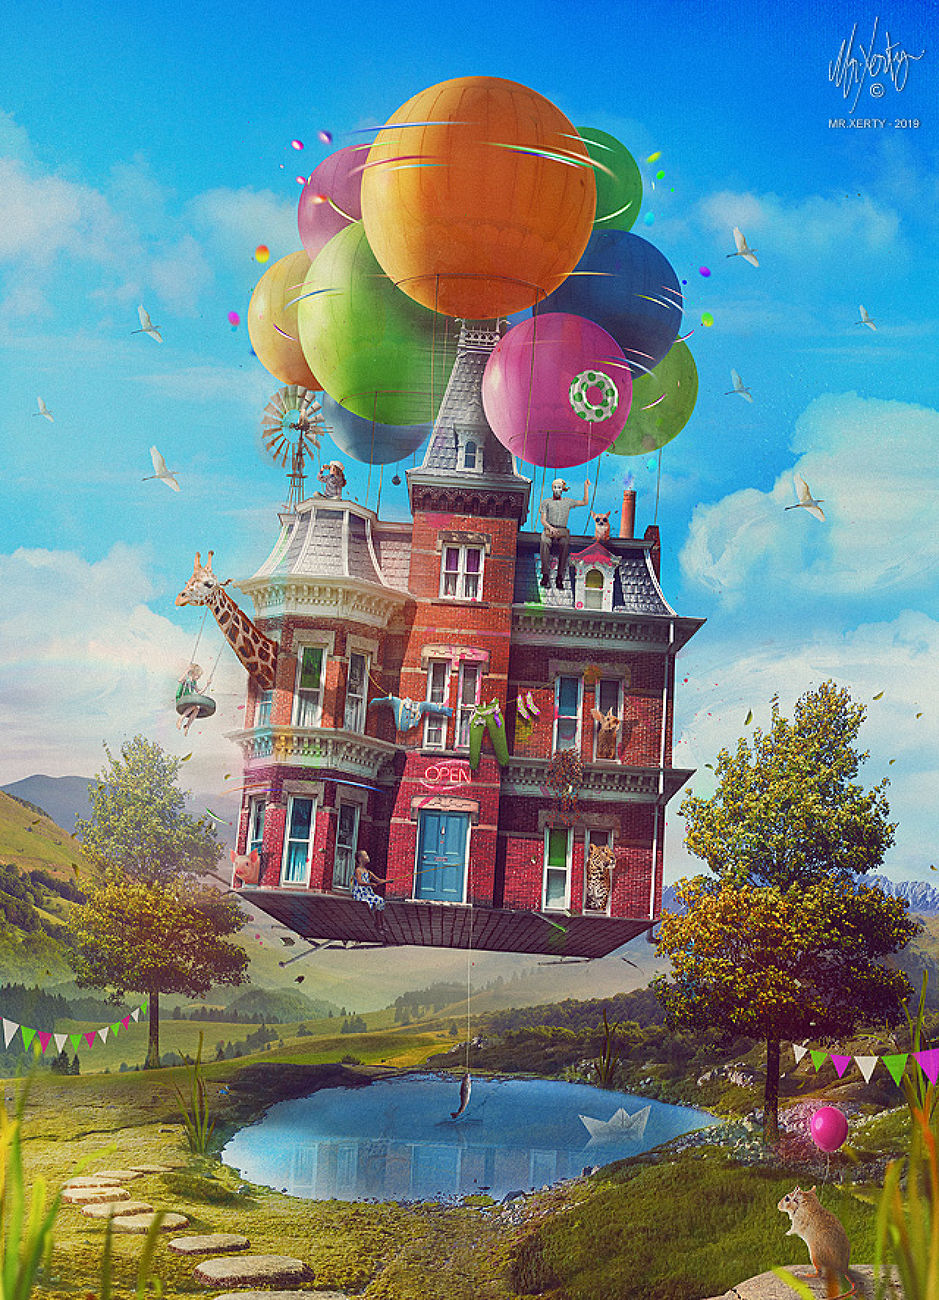 My House - In the middle of the sky